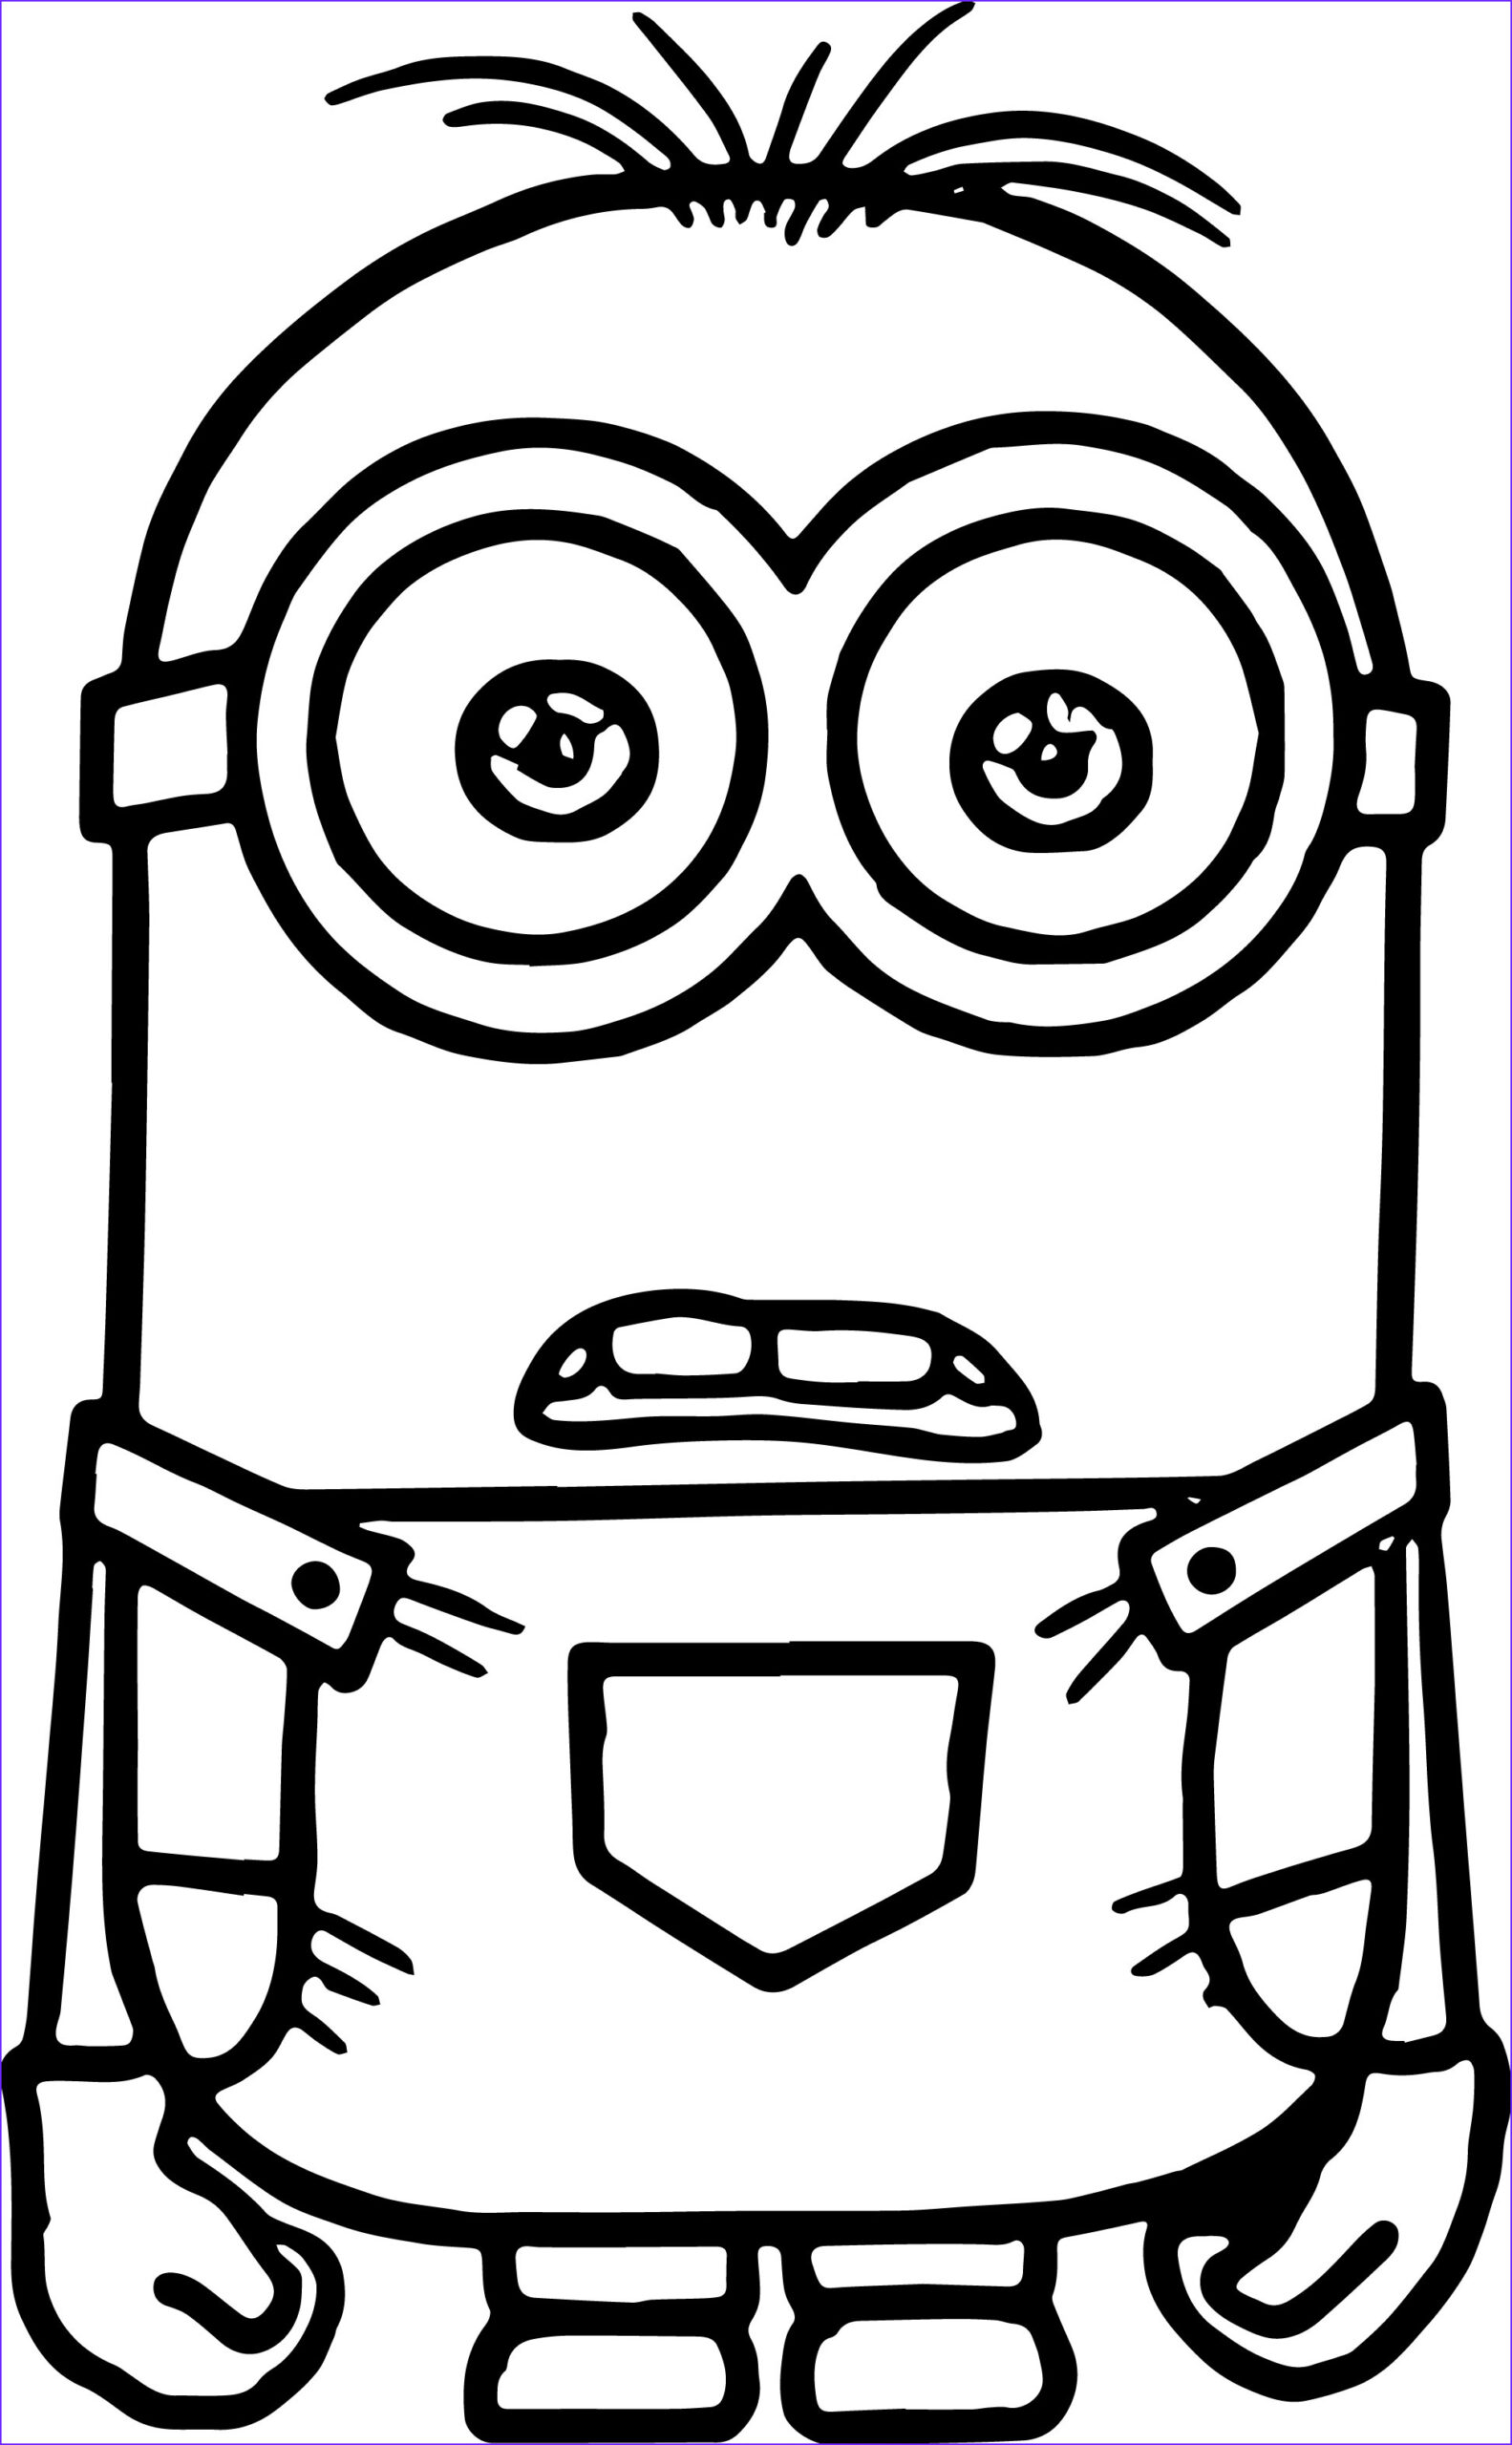 Minion Coloring Page New Images Minion Coloring Pages